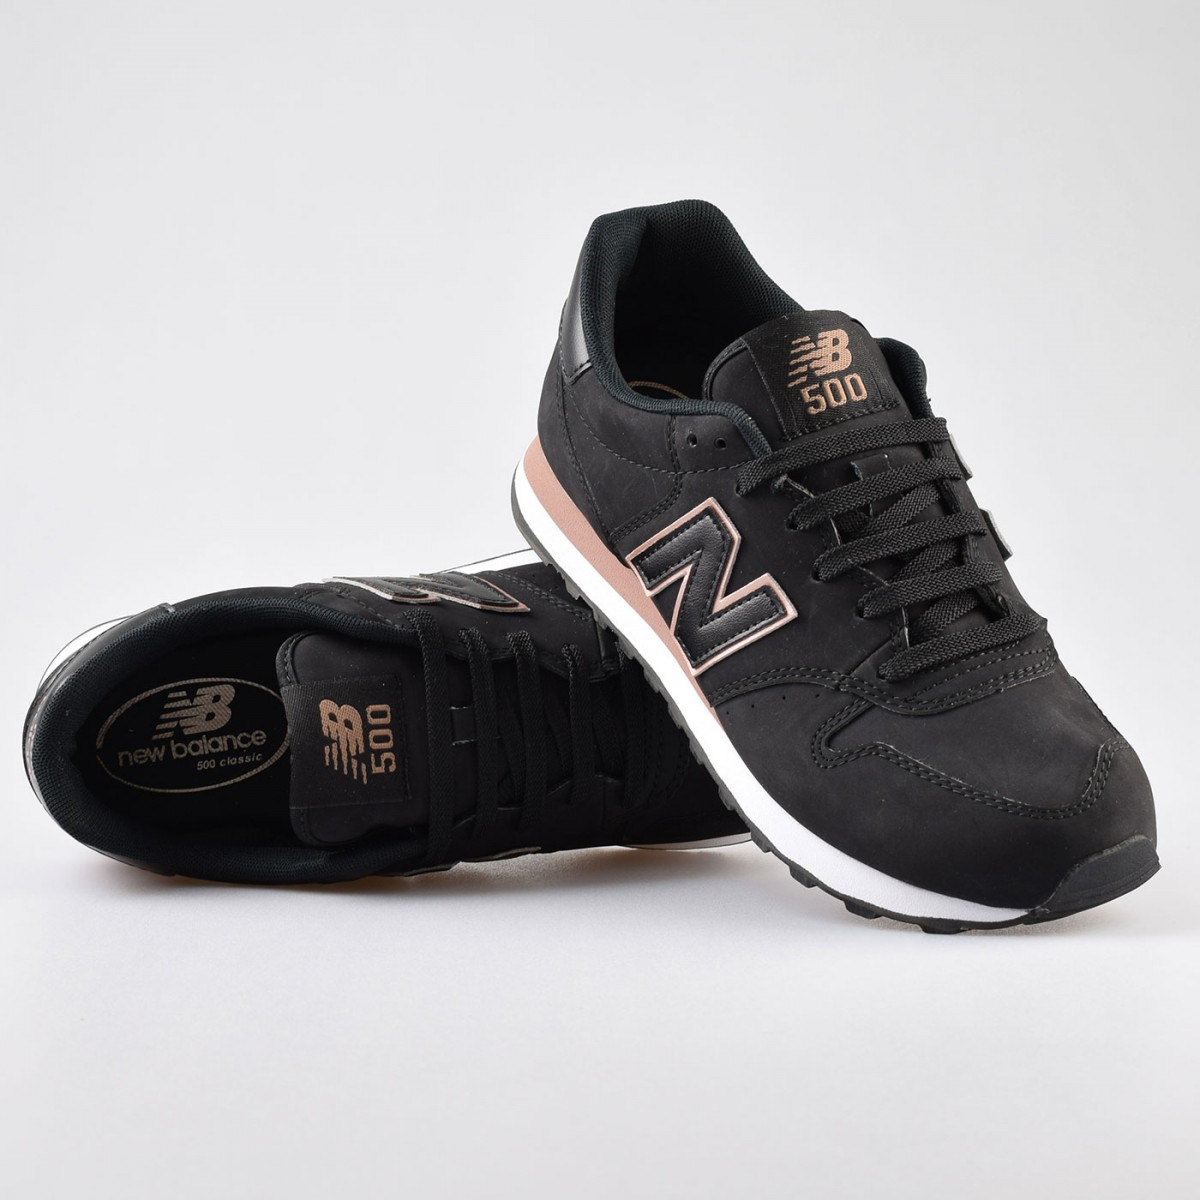 Toallas De Piscina New Balance Gw500 :zapatillas New Balance Gw500 Br | Nb